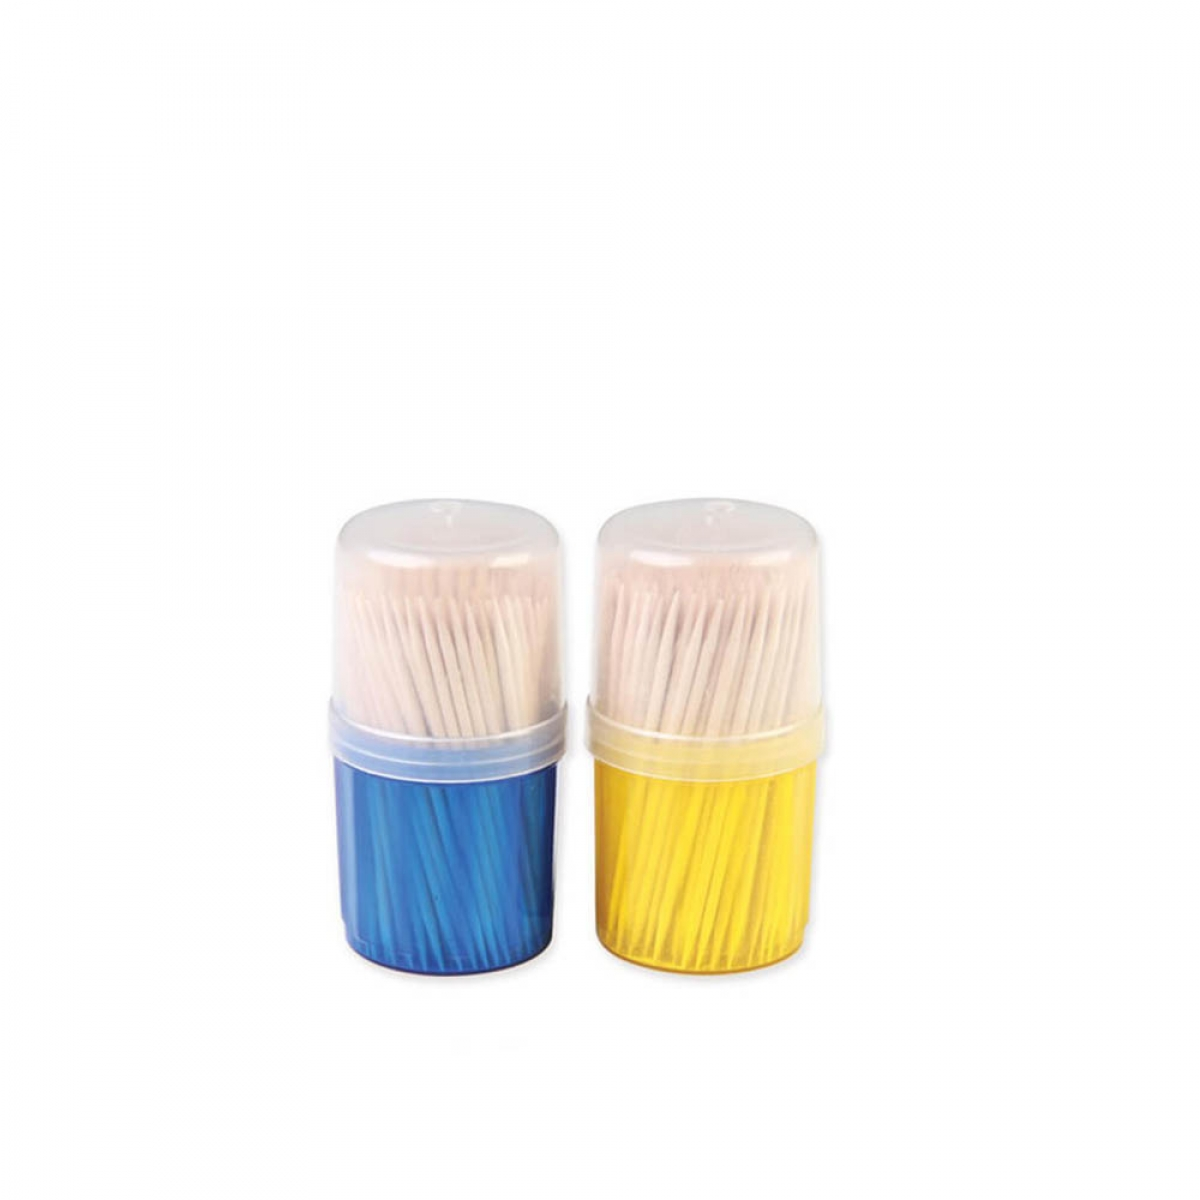 double ended toothpick 65